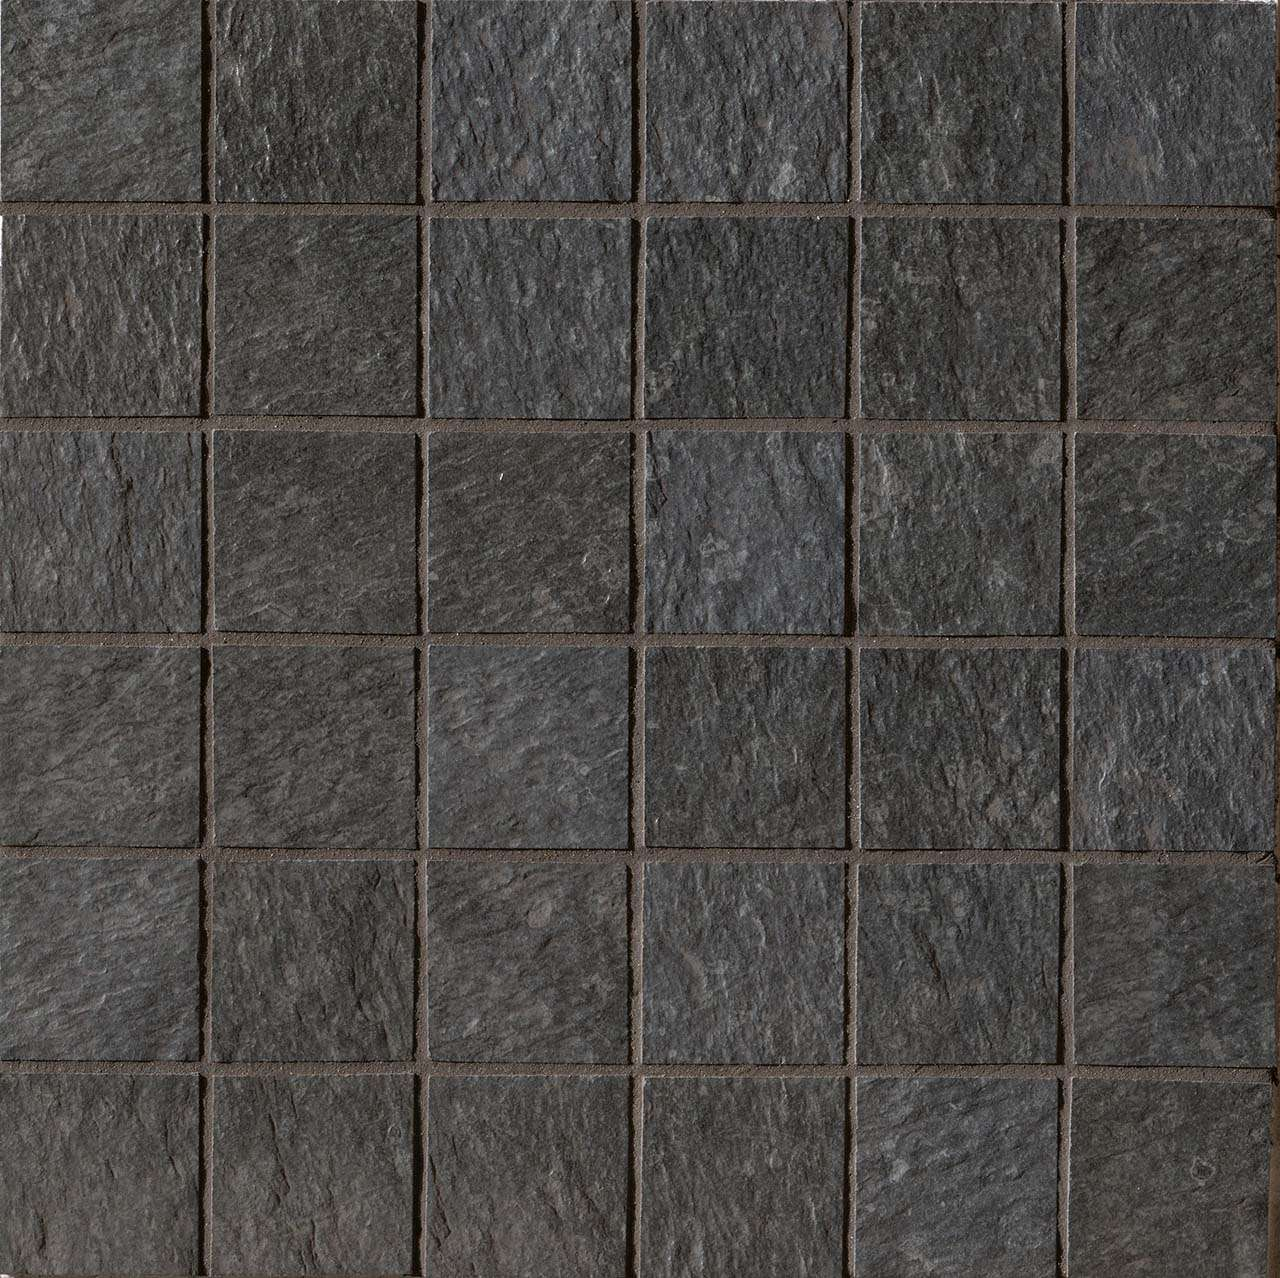 Fap Nord Night Gres Macromosaico Out 30x30